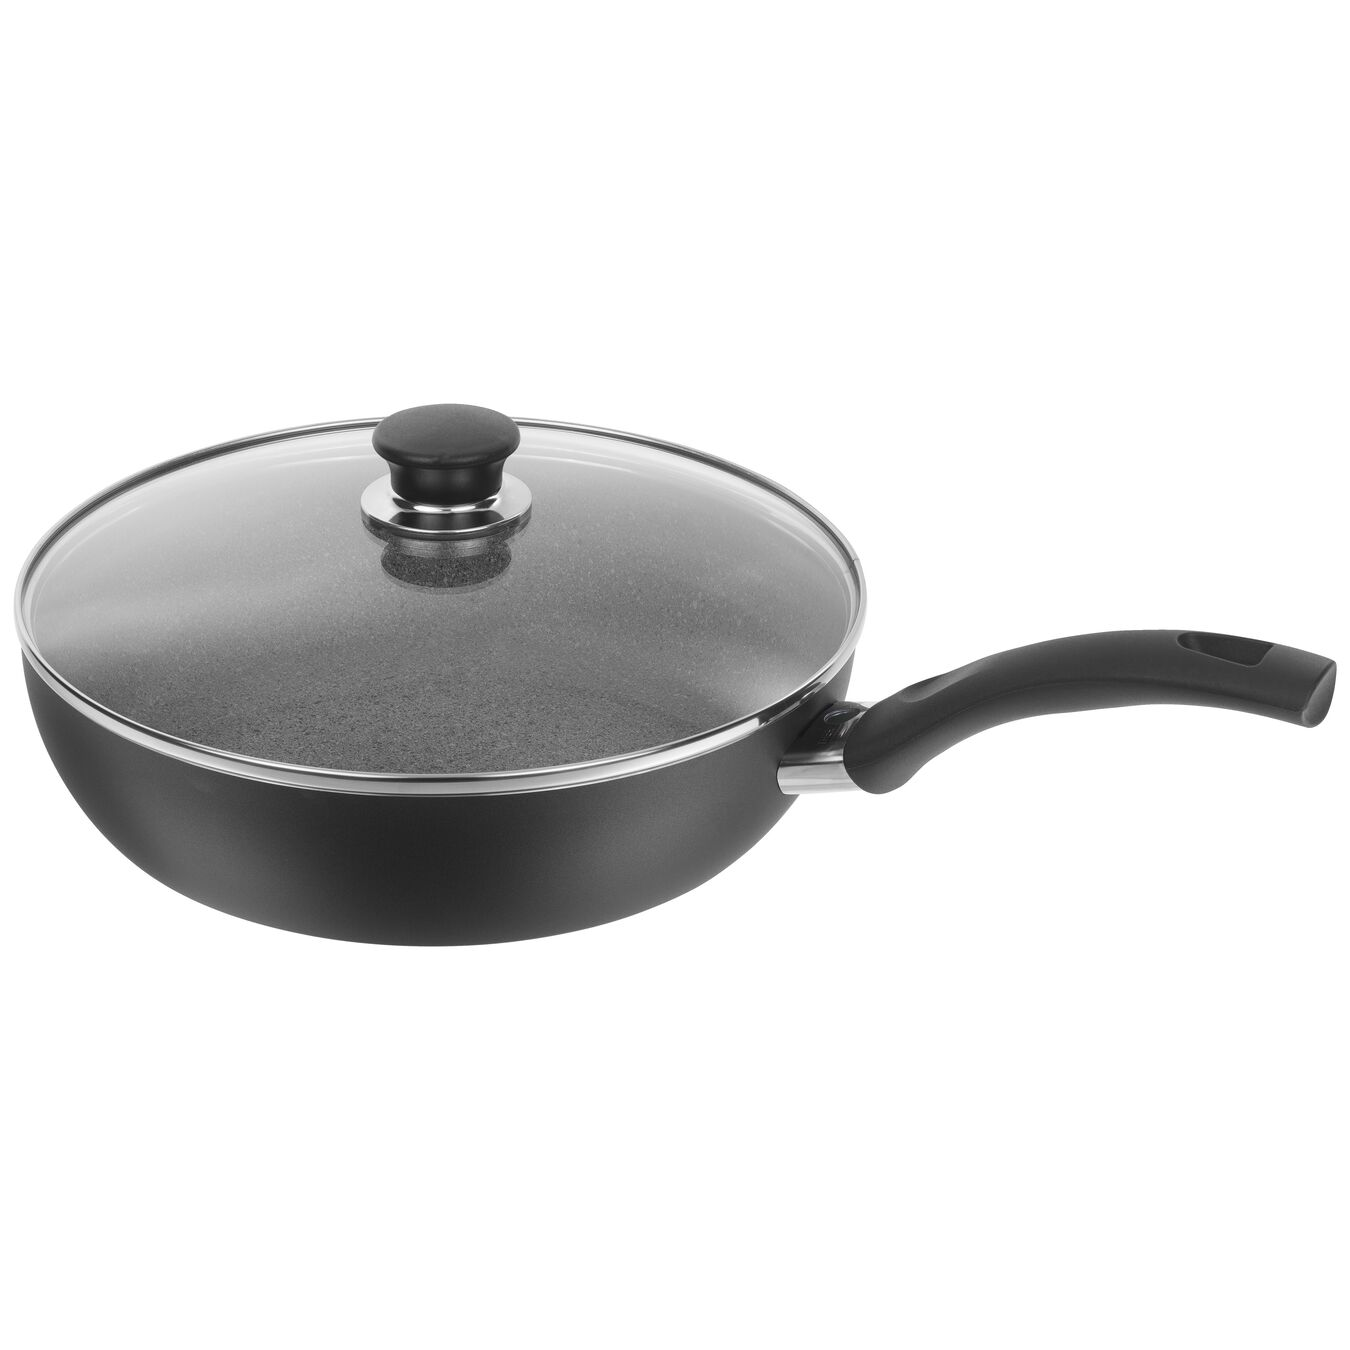 28 cm Saute pan with glass lid,,large 1